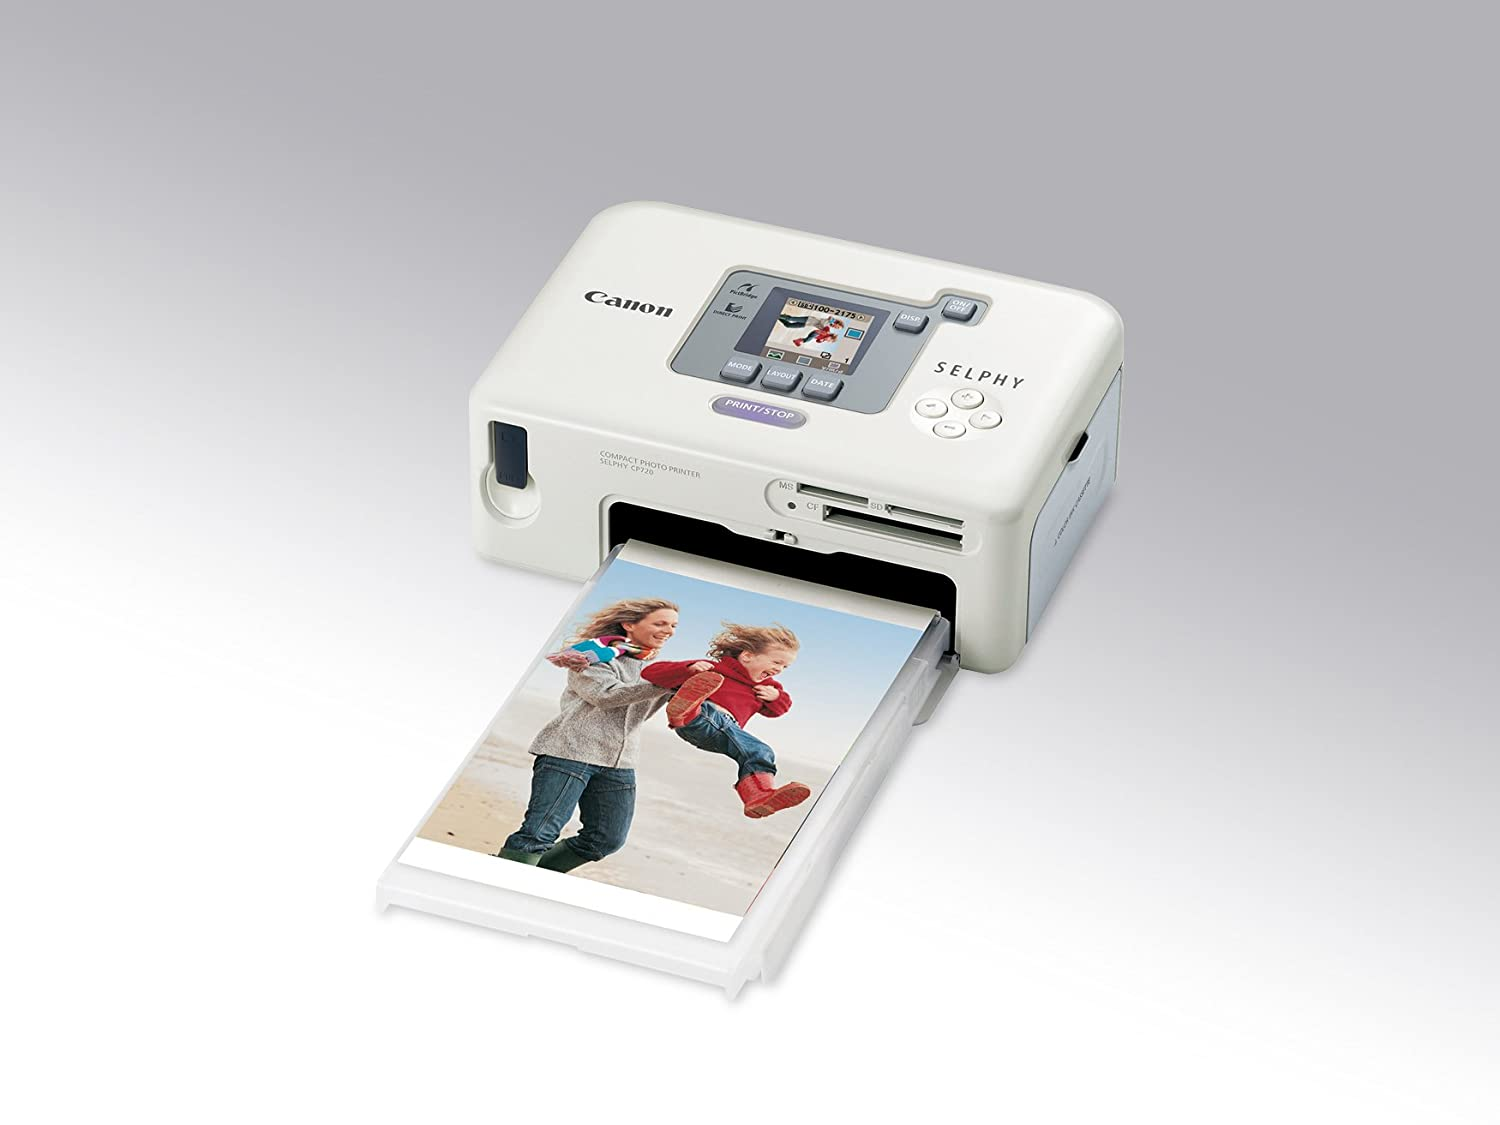 canon selphy ds810 photo printer manual